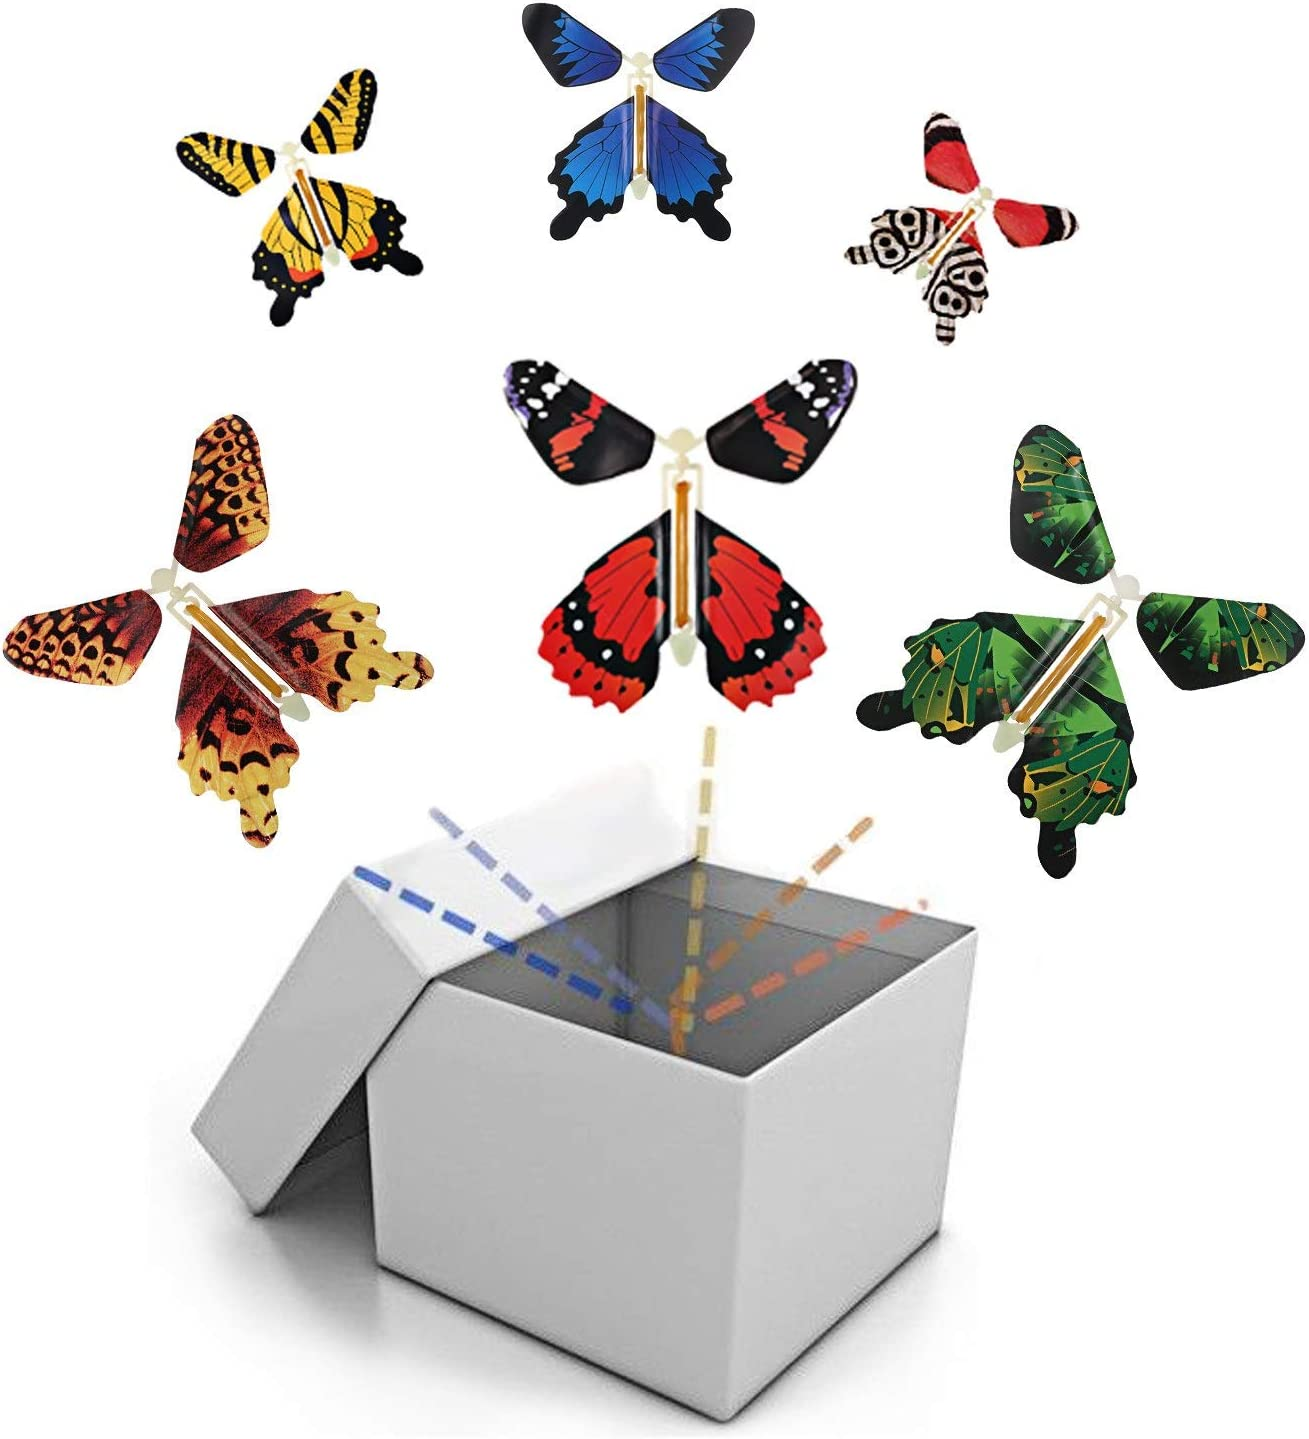 Magic Greeting Card Flying Butterfly With Greeting Cards Toy Gift Surprise